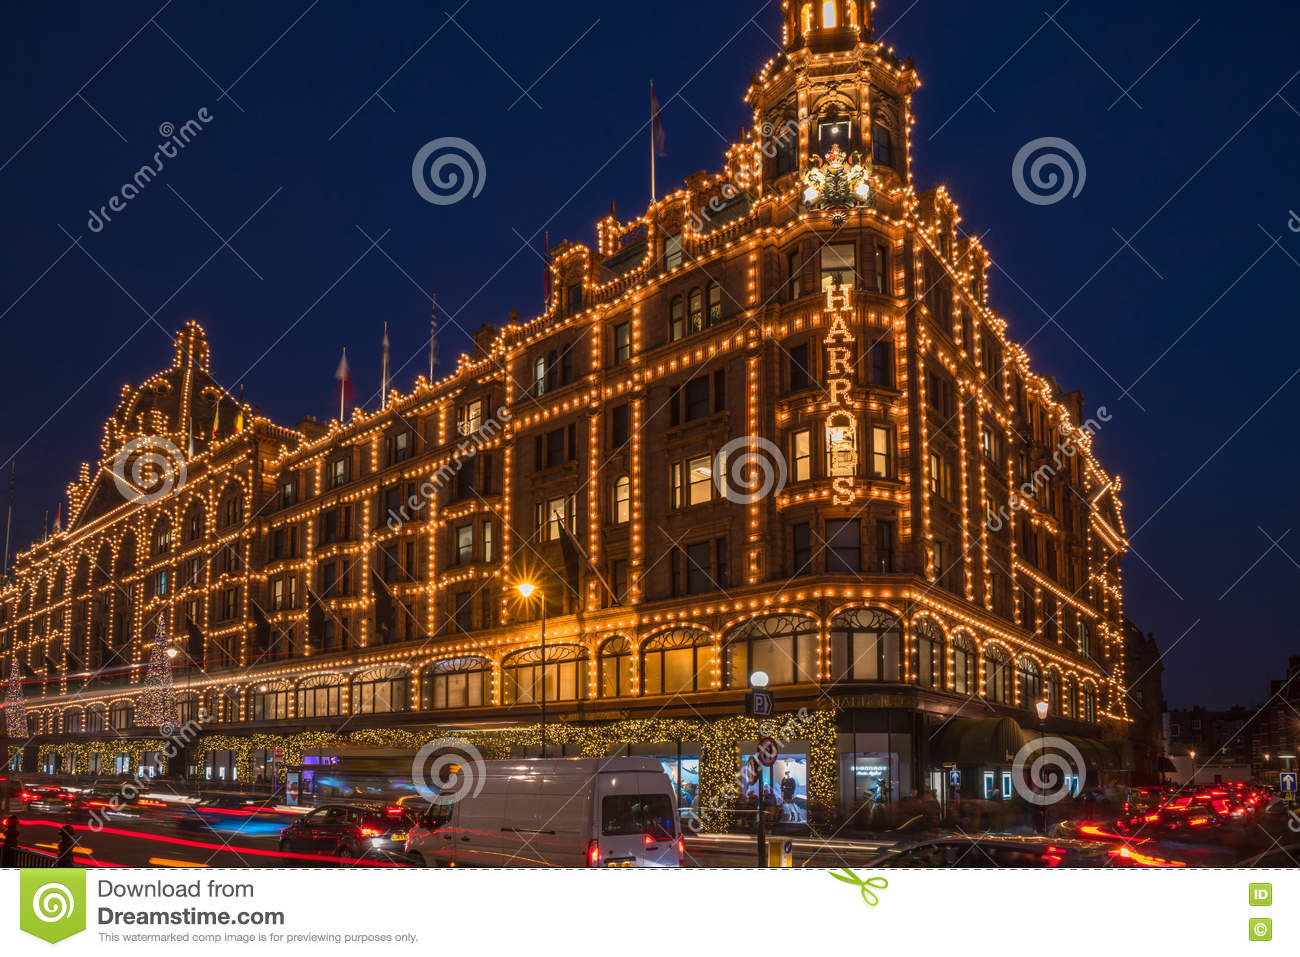 #AD211E View Of Harrods With Christmas Decorations Editorial Photo  6429 décoration noel harrods 1300x957 px @ aertt.com